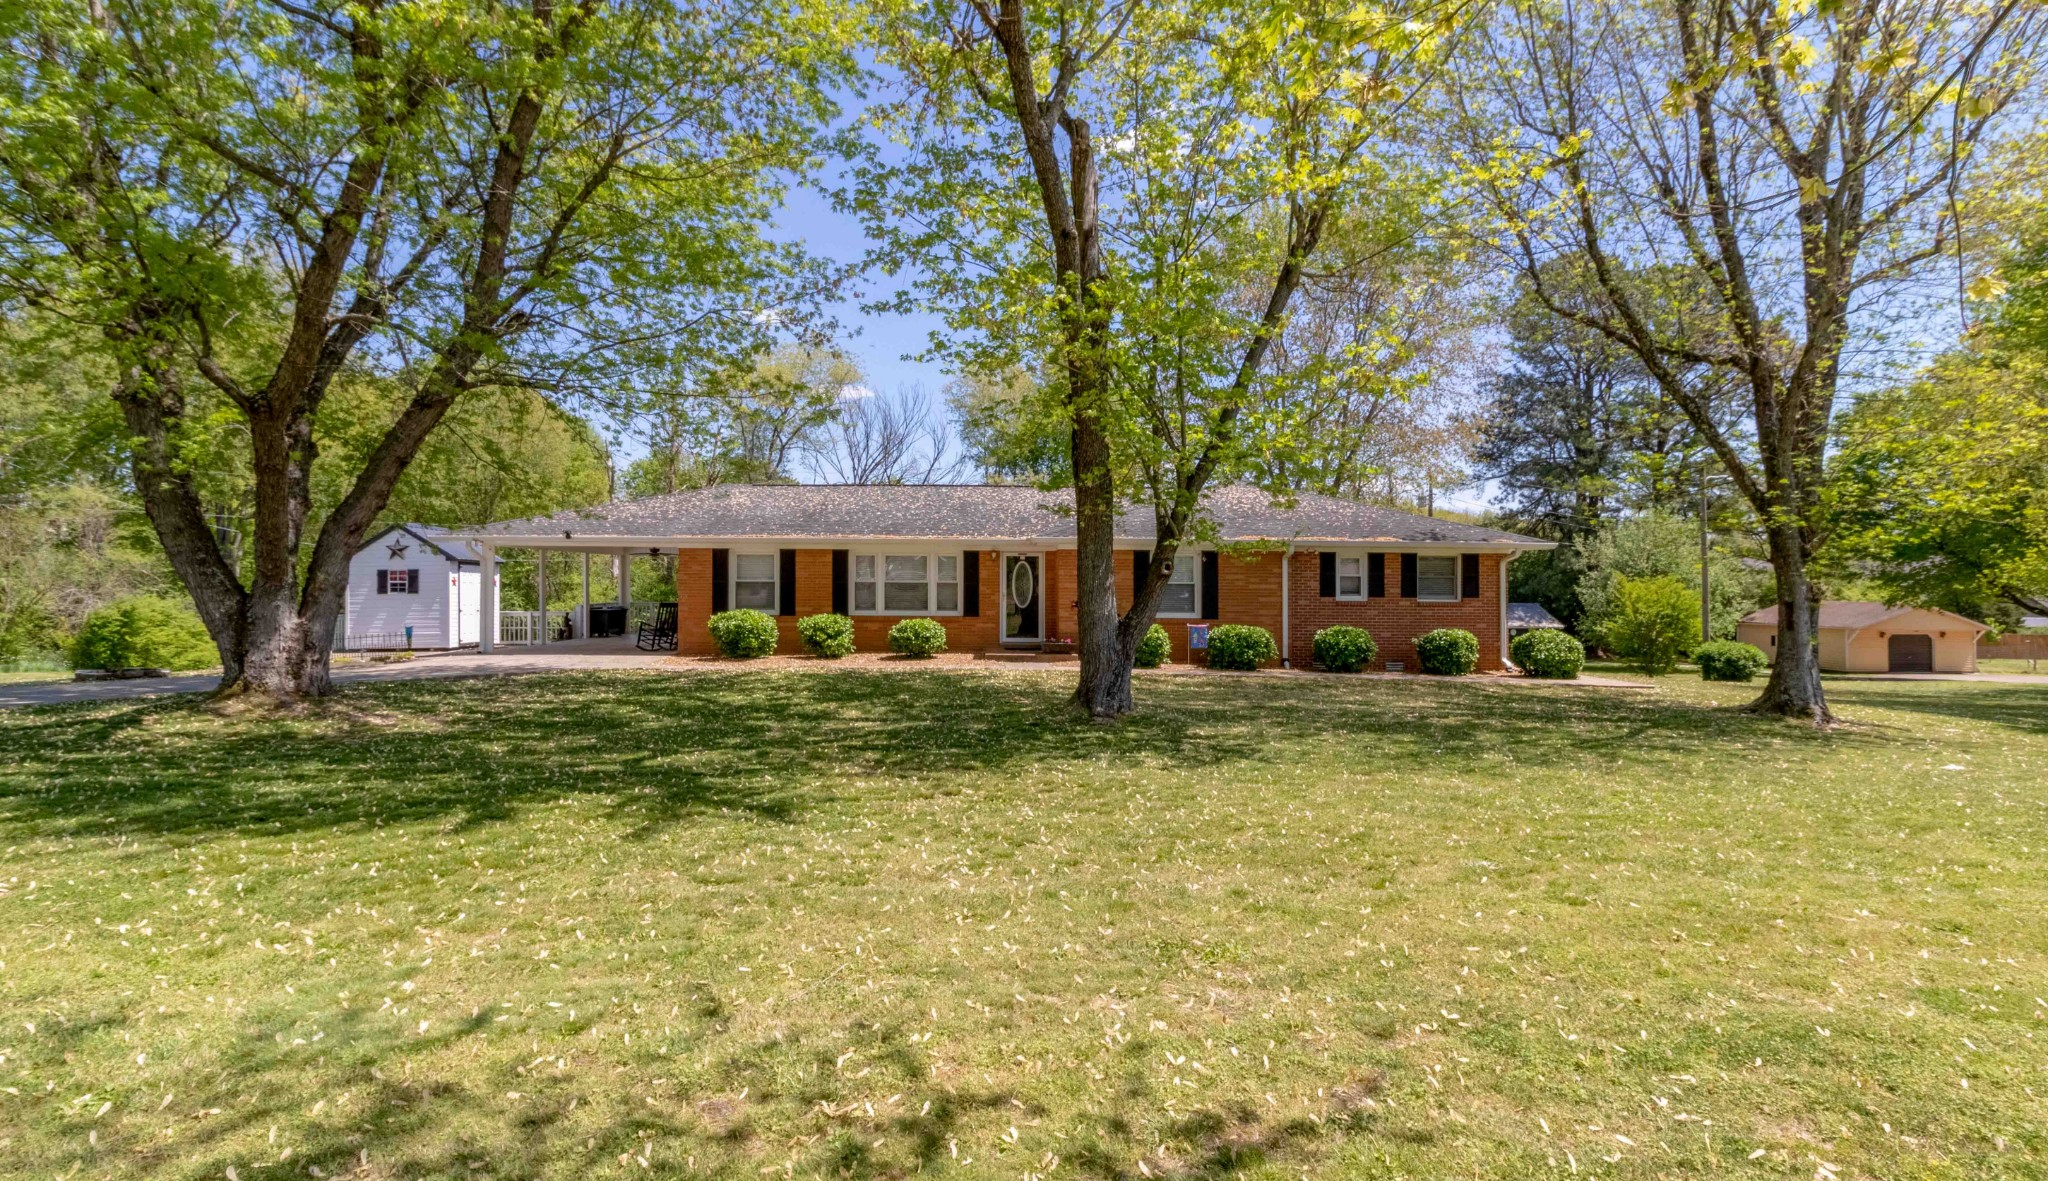 2847 Lylewood Rd Property Photo - Woodlawn, TN real estate listing